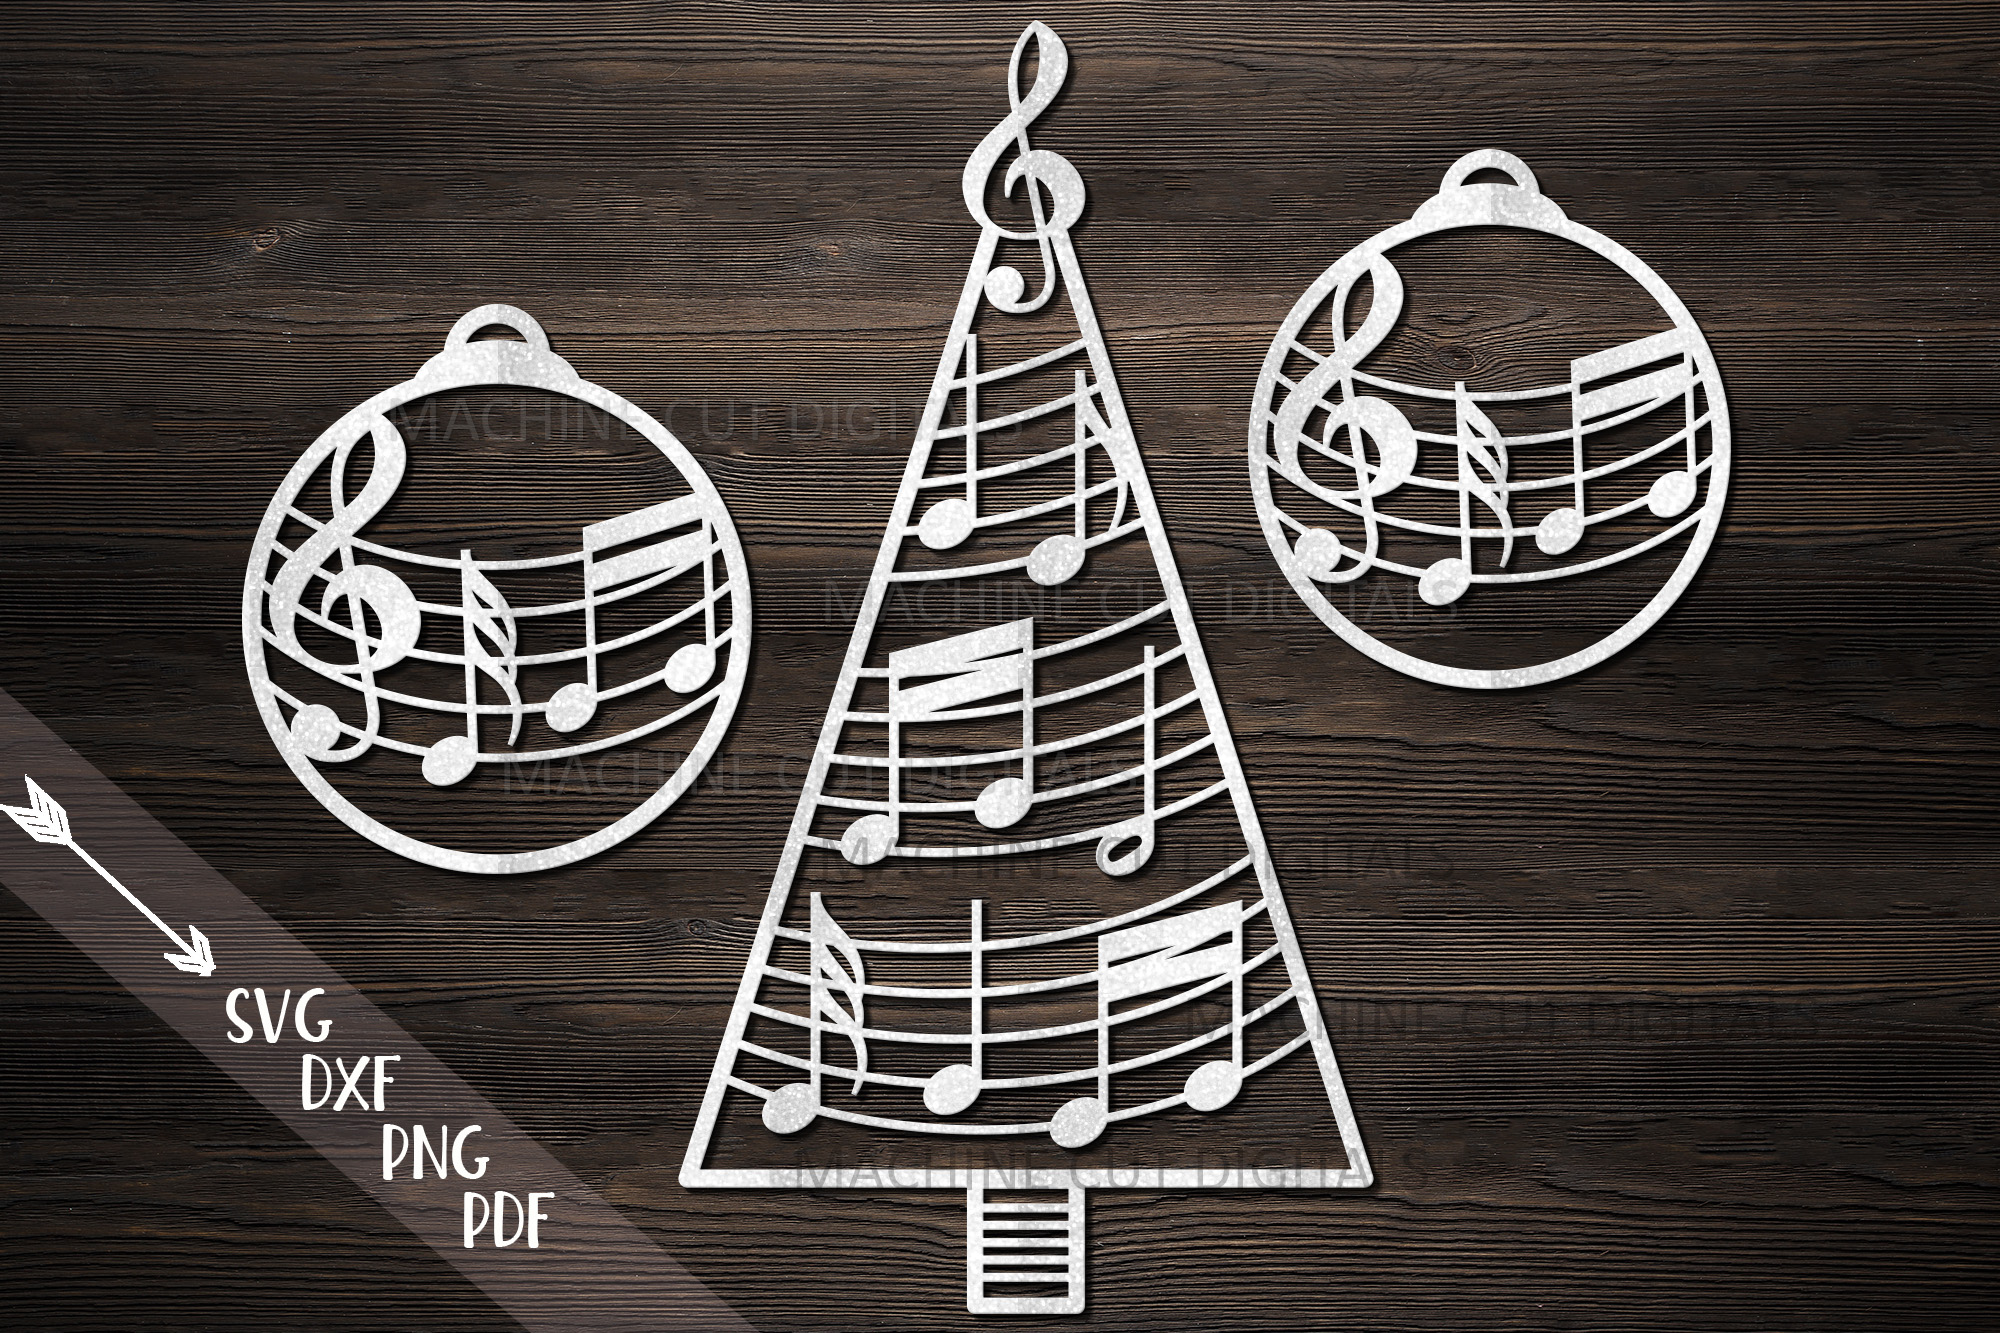 Download Free Music Christmas Tree Decorations Svg Cut Graphic By Cornelia for Cricut Explore, Silhouette and other cutting machines.